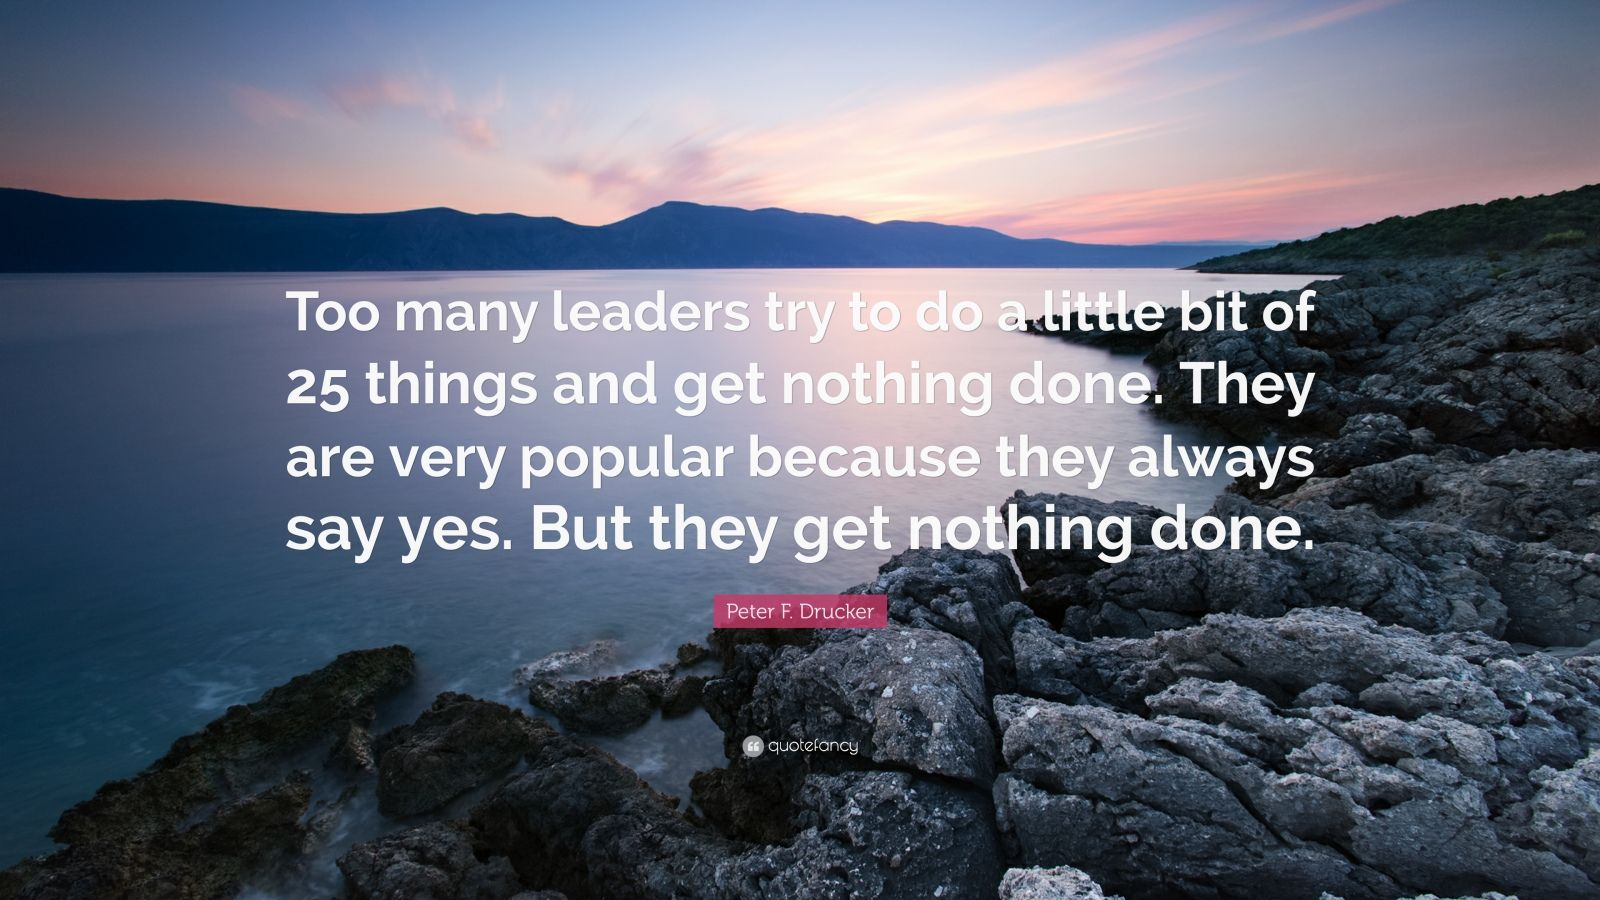 "Peter F. Drucker Quote: ""Too many leaders try to do a little bit of 25 things and get nothing done. They are very popular because they always say yes. But they get nothing done."""